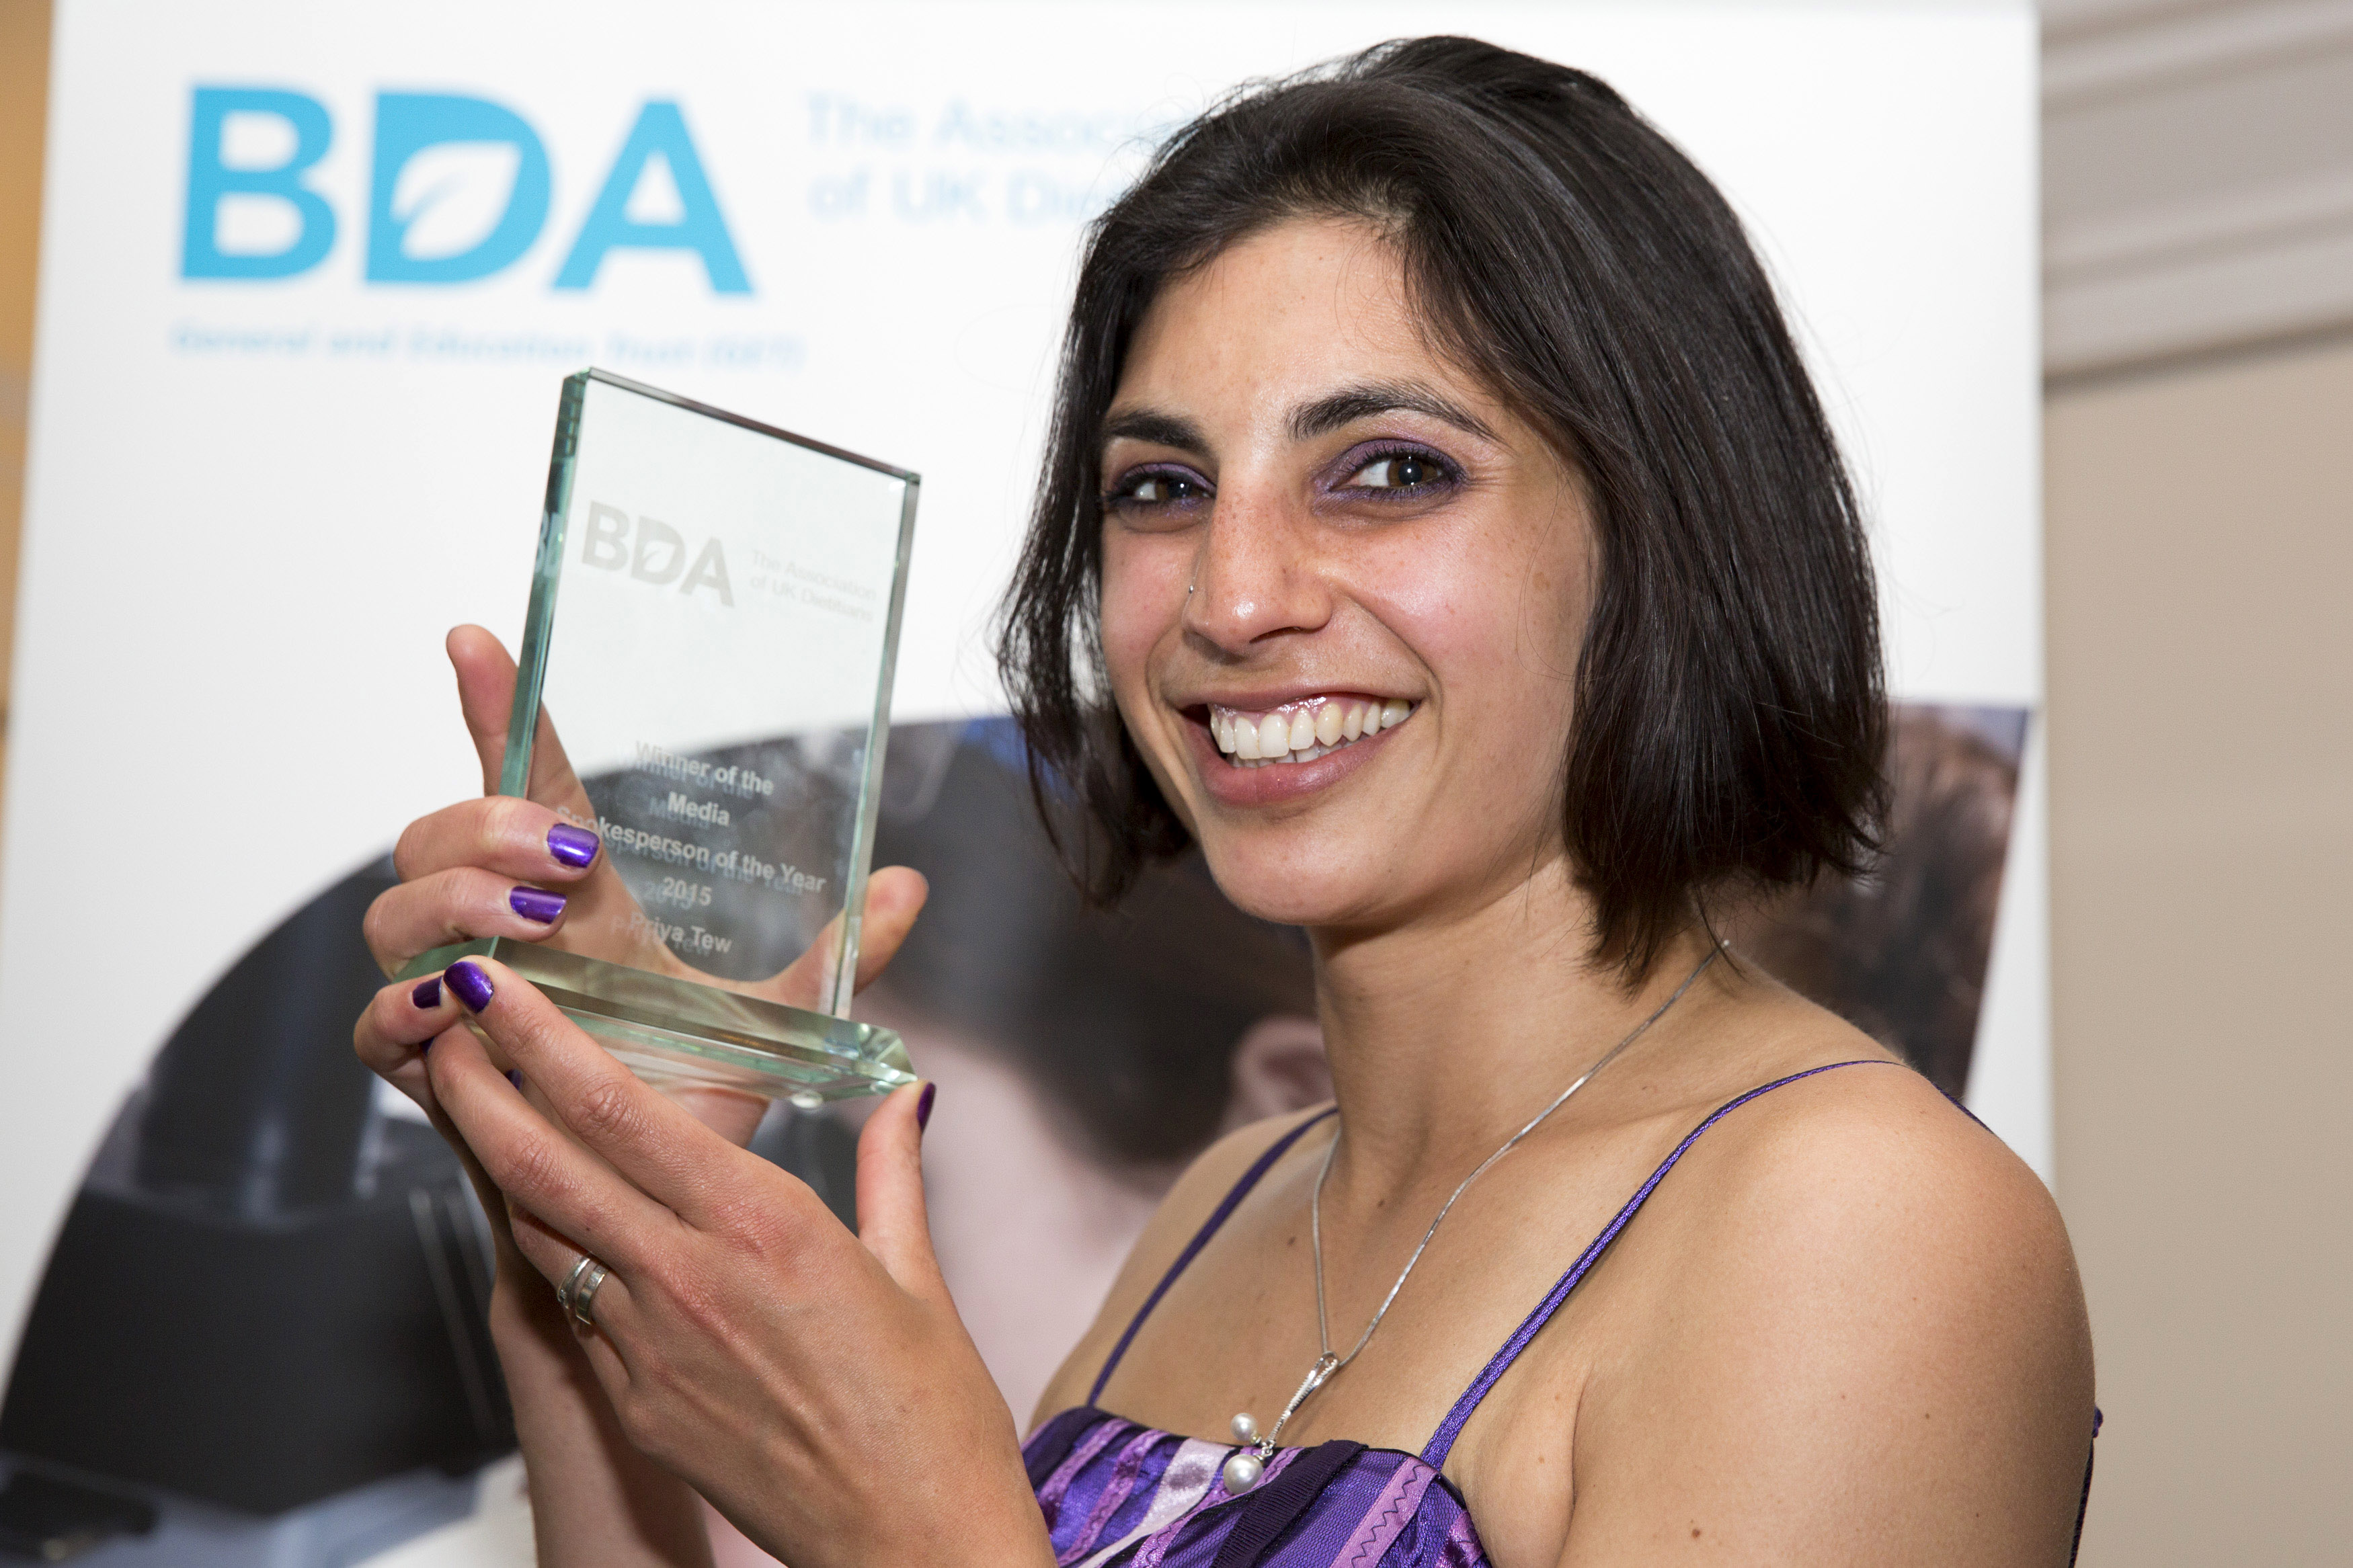 BDA Conference and Dinner 2015: winner of the media spokesperson of the year award, Dietitian UK